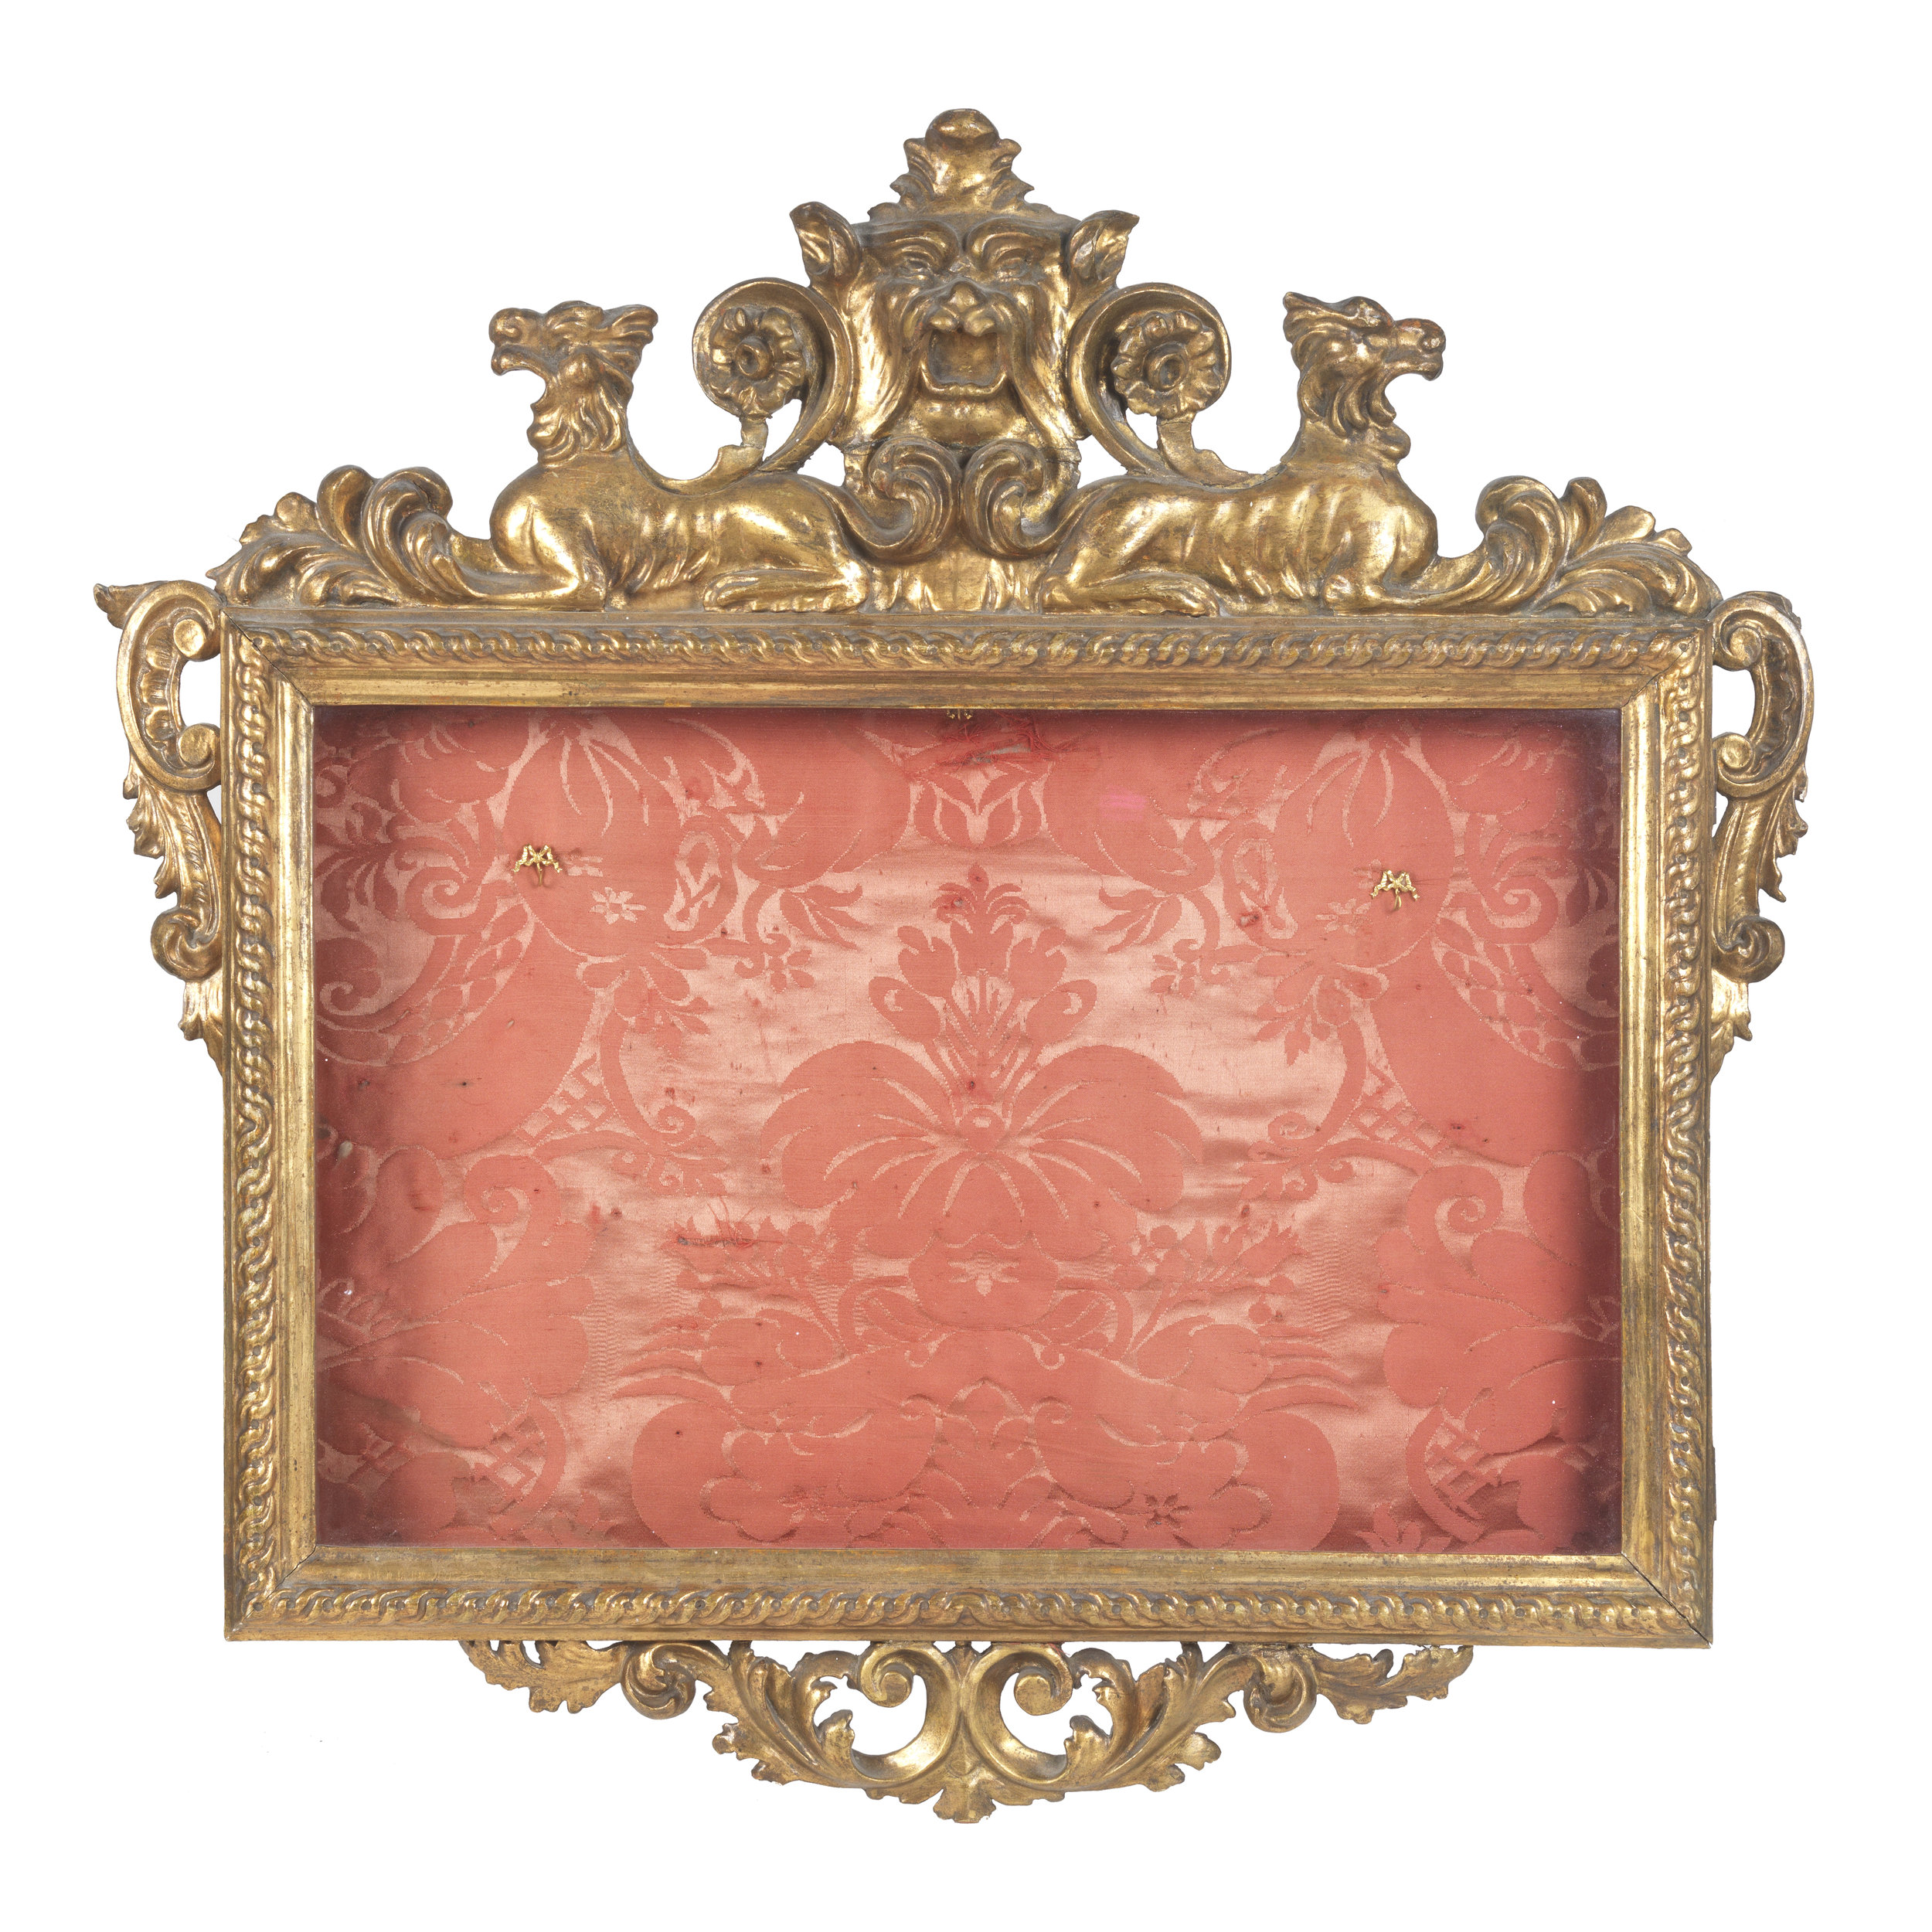 Early 19th Century glazed display case originally used to exhibit portrait miniatures. Carved wood and gesso frame and original gilding. The rope work frame features plumes and scrolls, and is surmounted with a pair of stylised hounds either side of the central grotesque. Lined with period red silk damask.  Sold